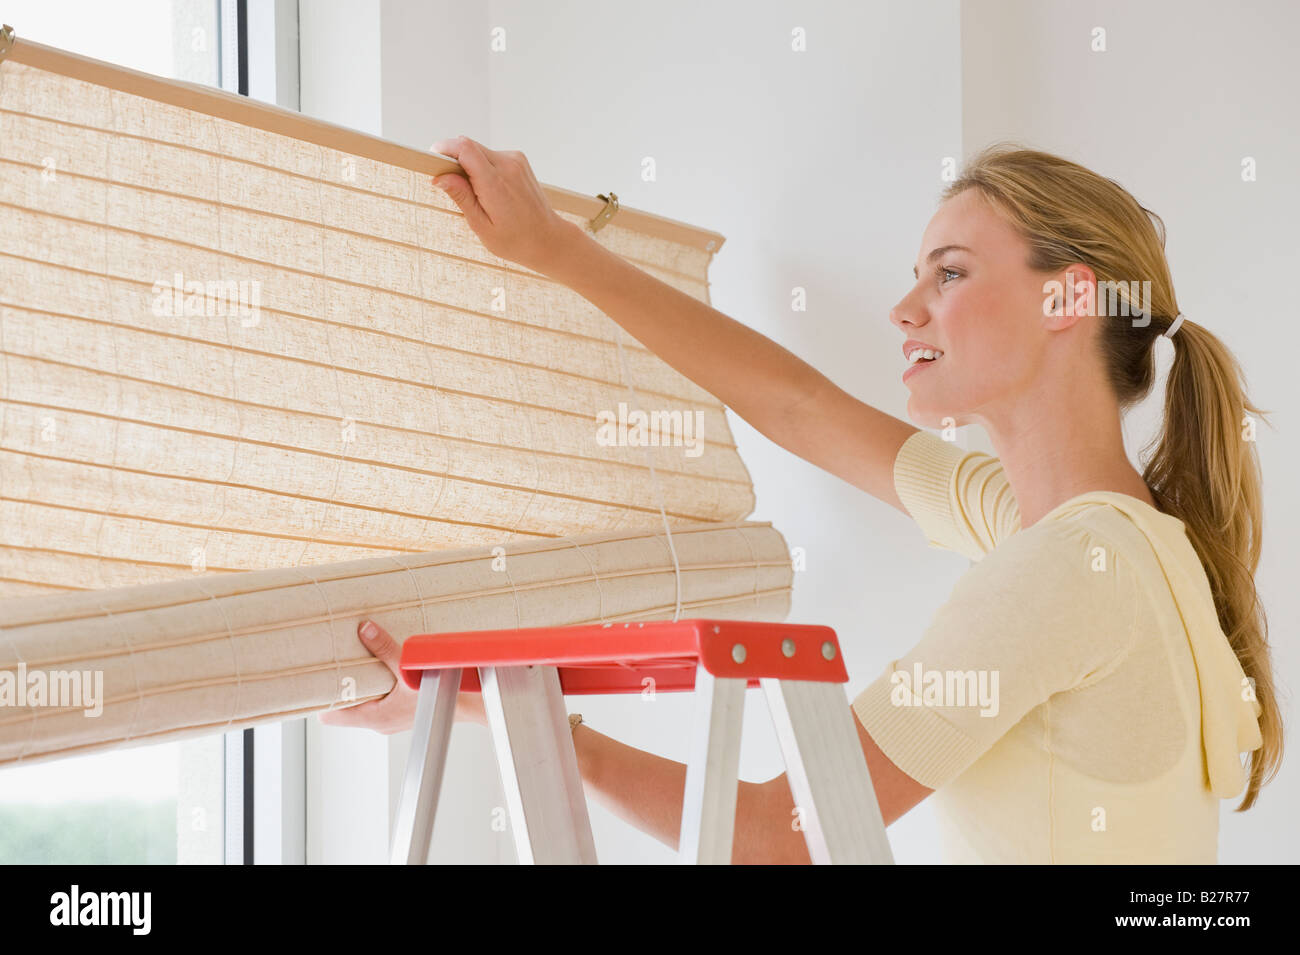 Woman hanging window blinds - Stock Image